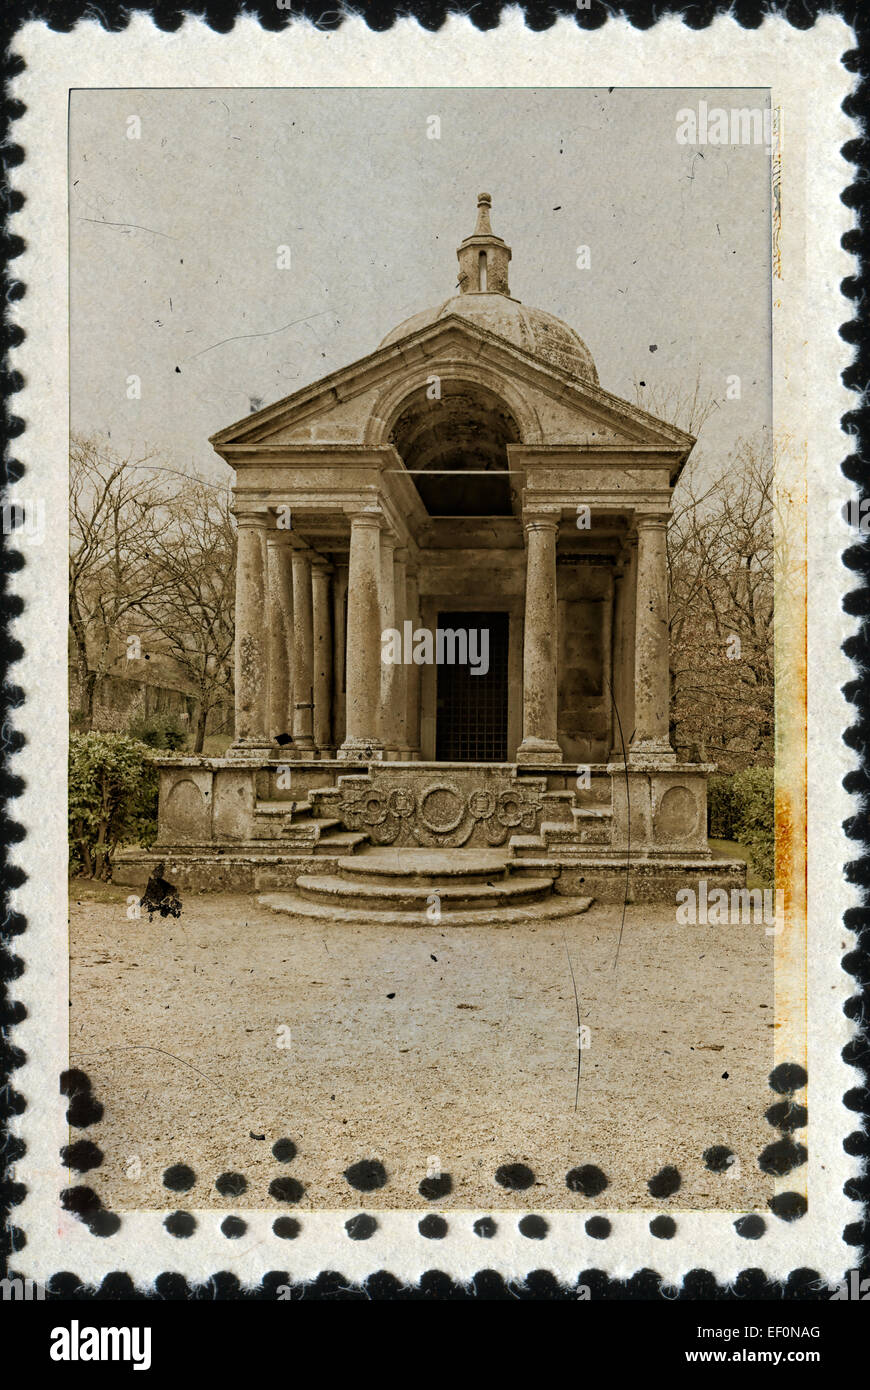 Temple Of Eternity Bomarzo On Old Stamp - Stock Image